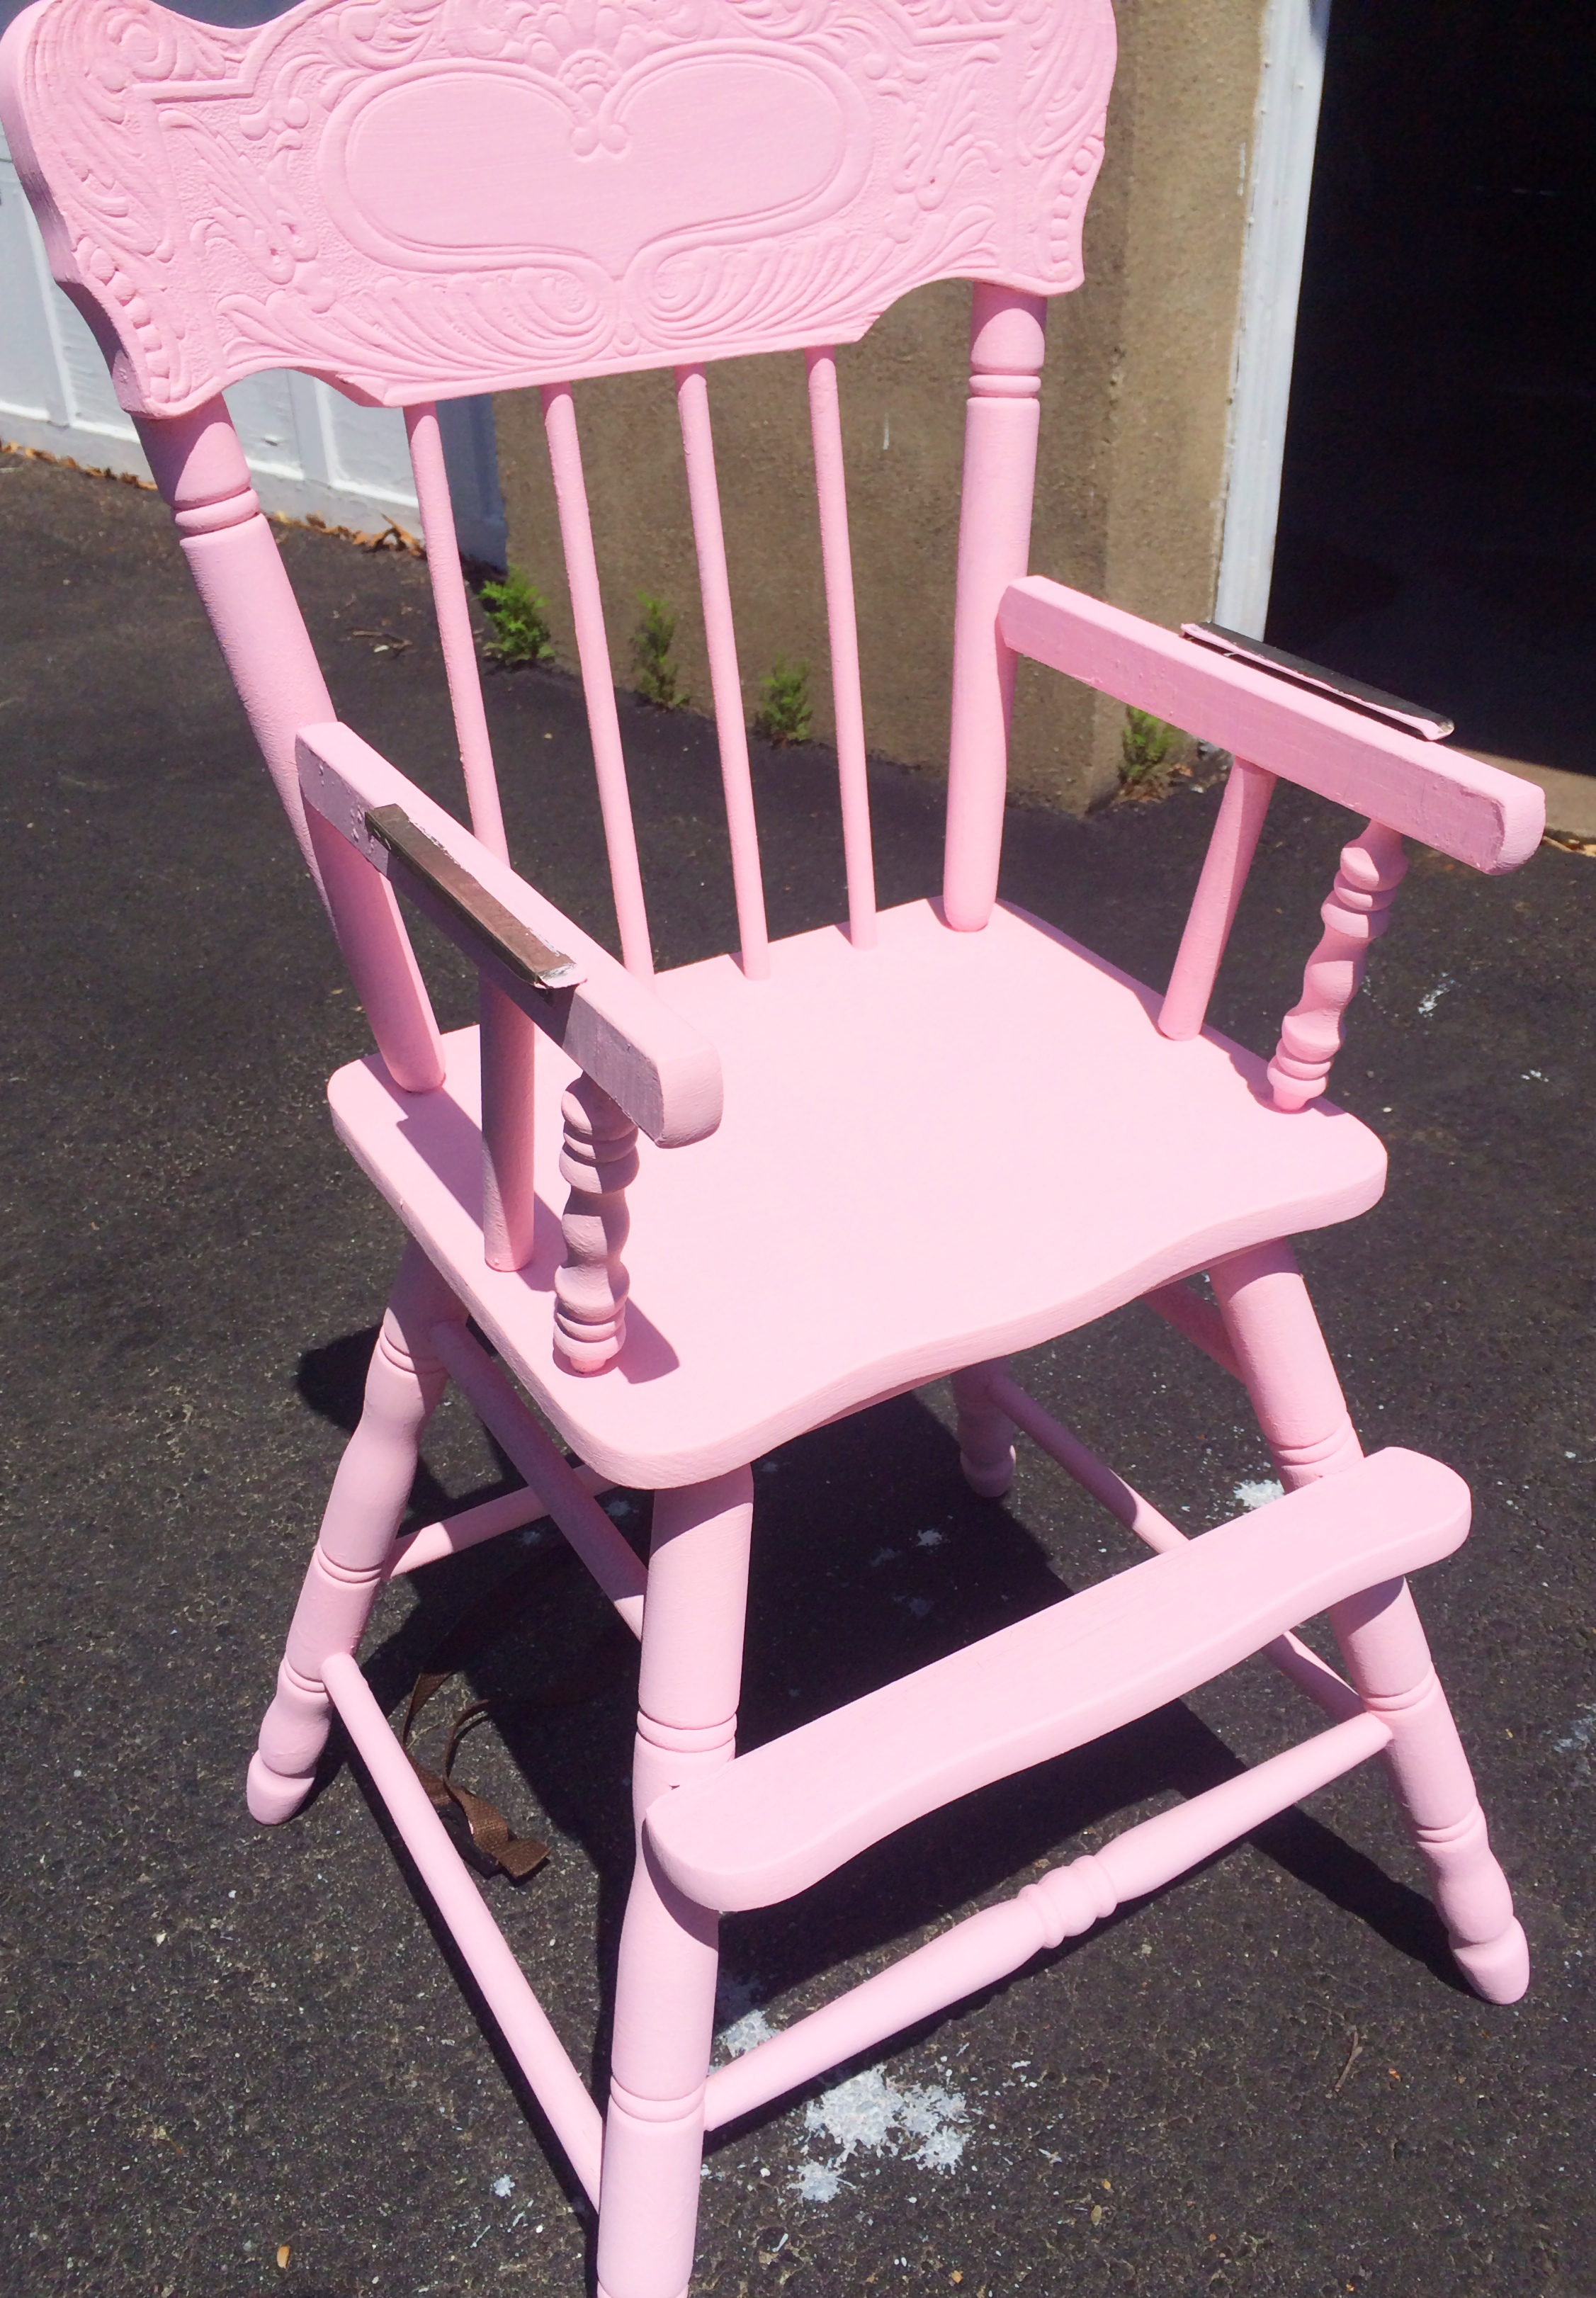 Distressed Wooden High Chair Tutorial In Pink – pumpkin rose